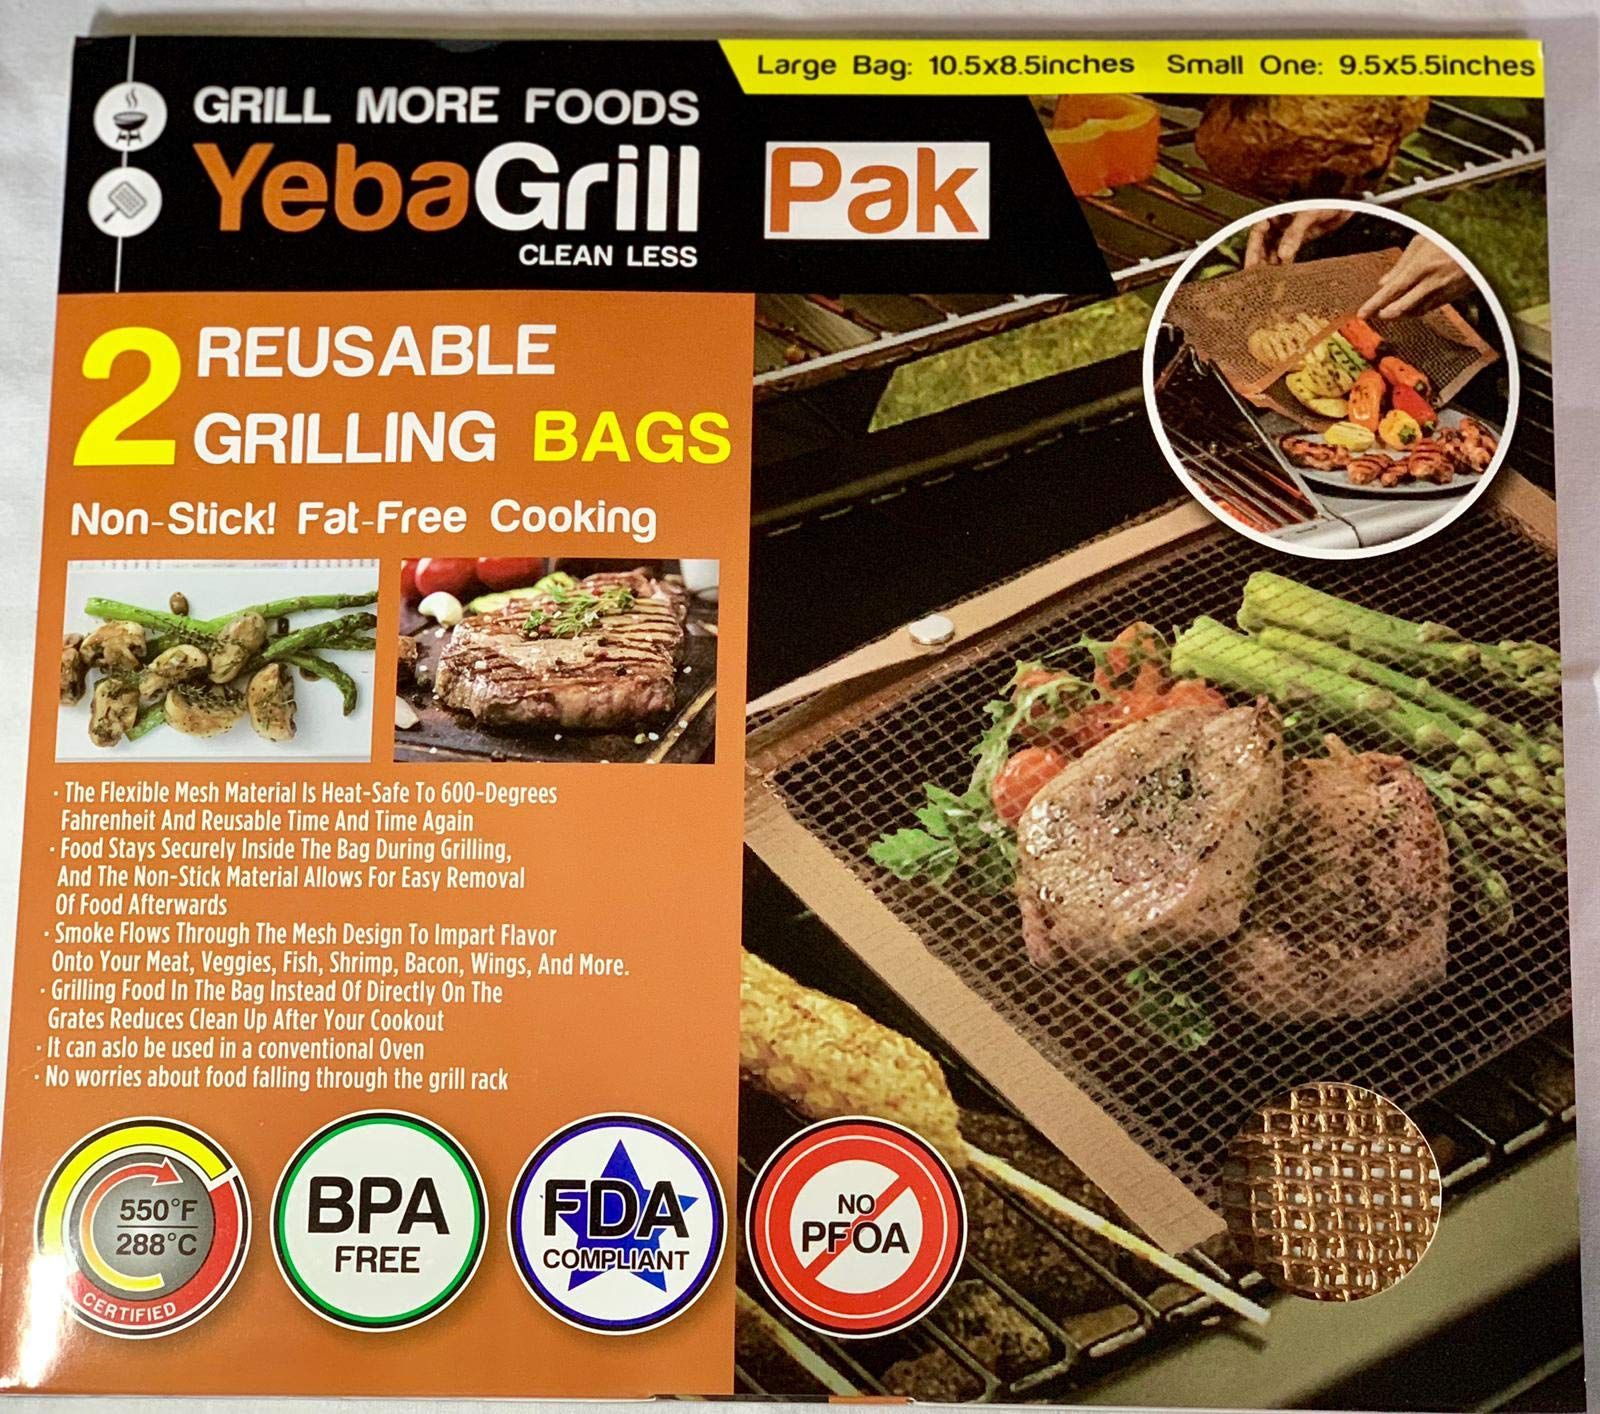 YEBA GRILL PAK - Set of 2 Reusable Grilling Mesh Bags - Non Stick Dishwasher Safe - Easy to Clean - Safe to use on Electric & Charcoal Grill